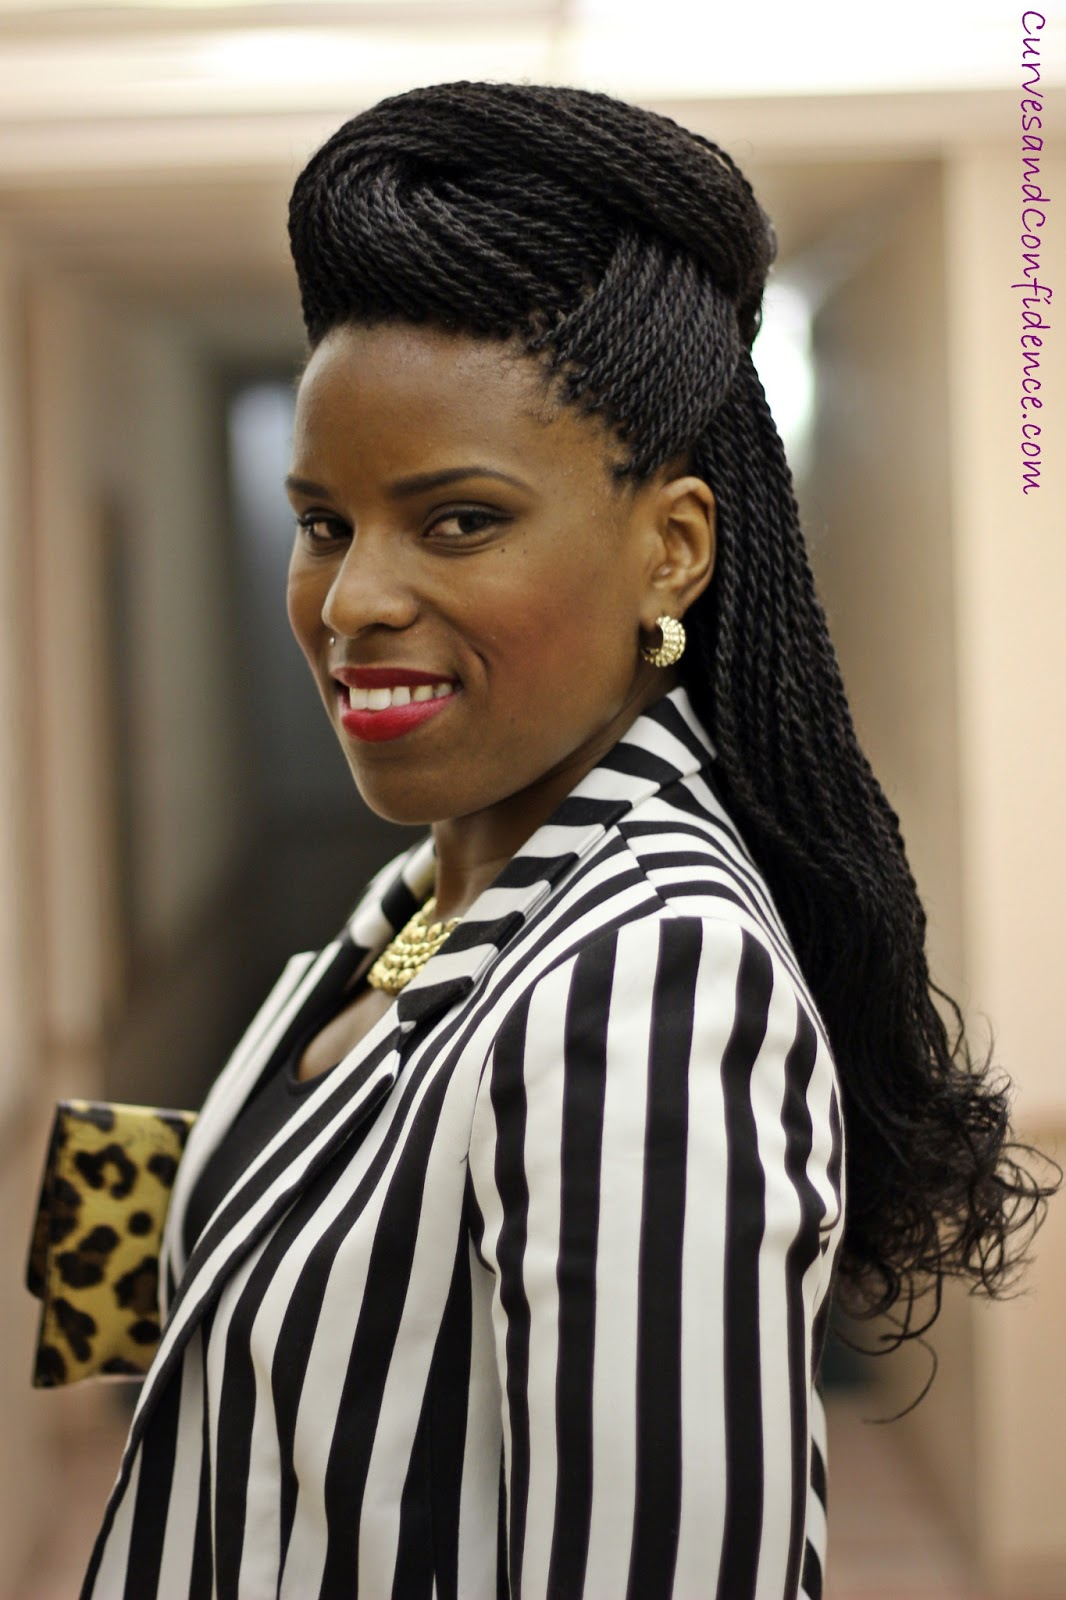 senegalese twist updo hairstyles : Senegalese Twists Updo Hairstyles Images & Pictures - Becuo